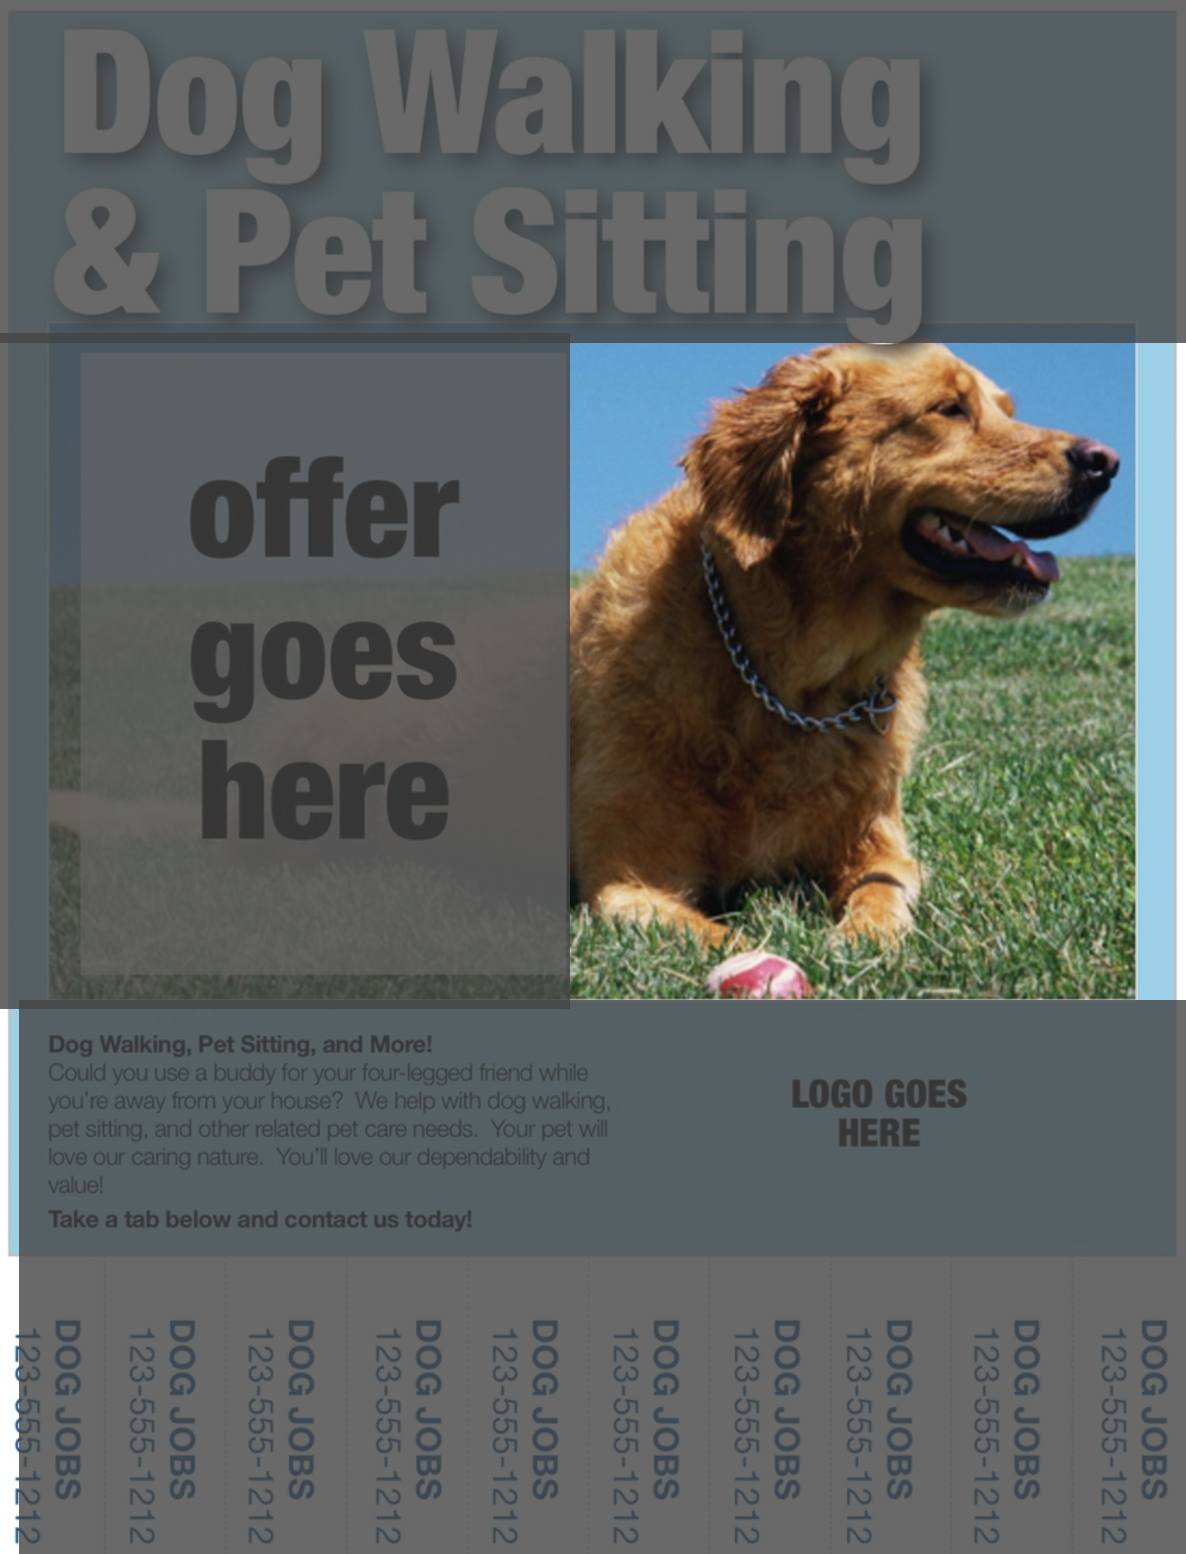 dog walking flyer images